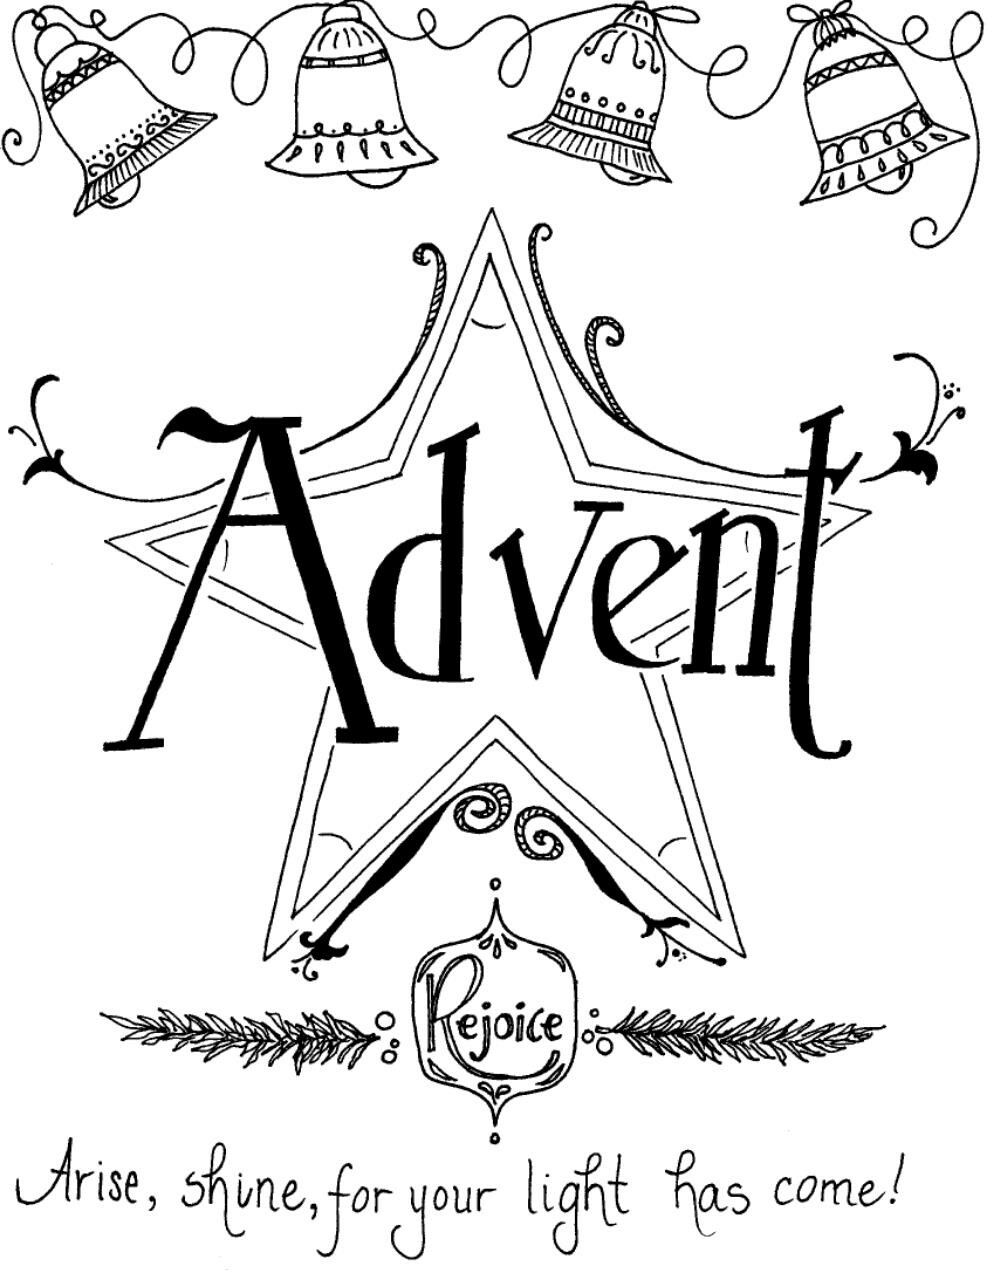 advent coloring page - Advent Coloring Pages